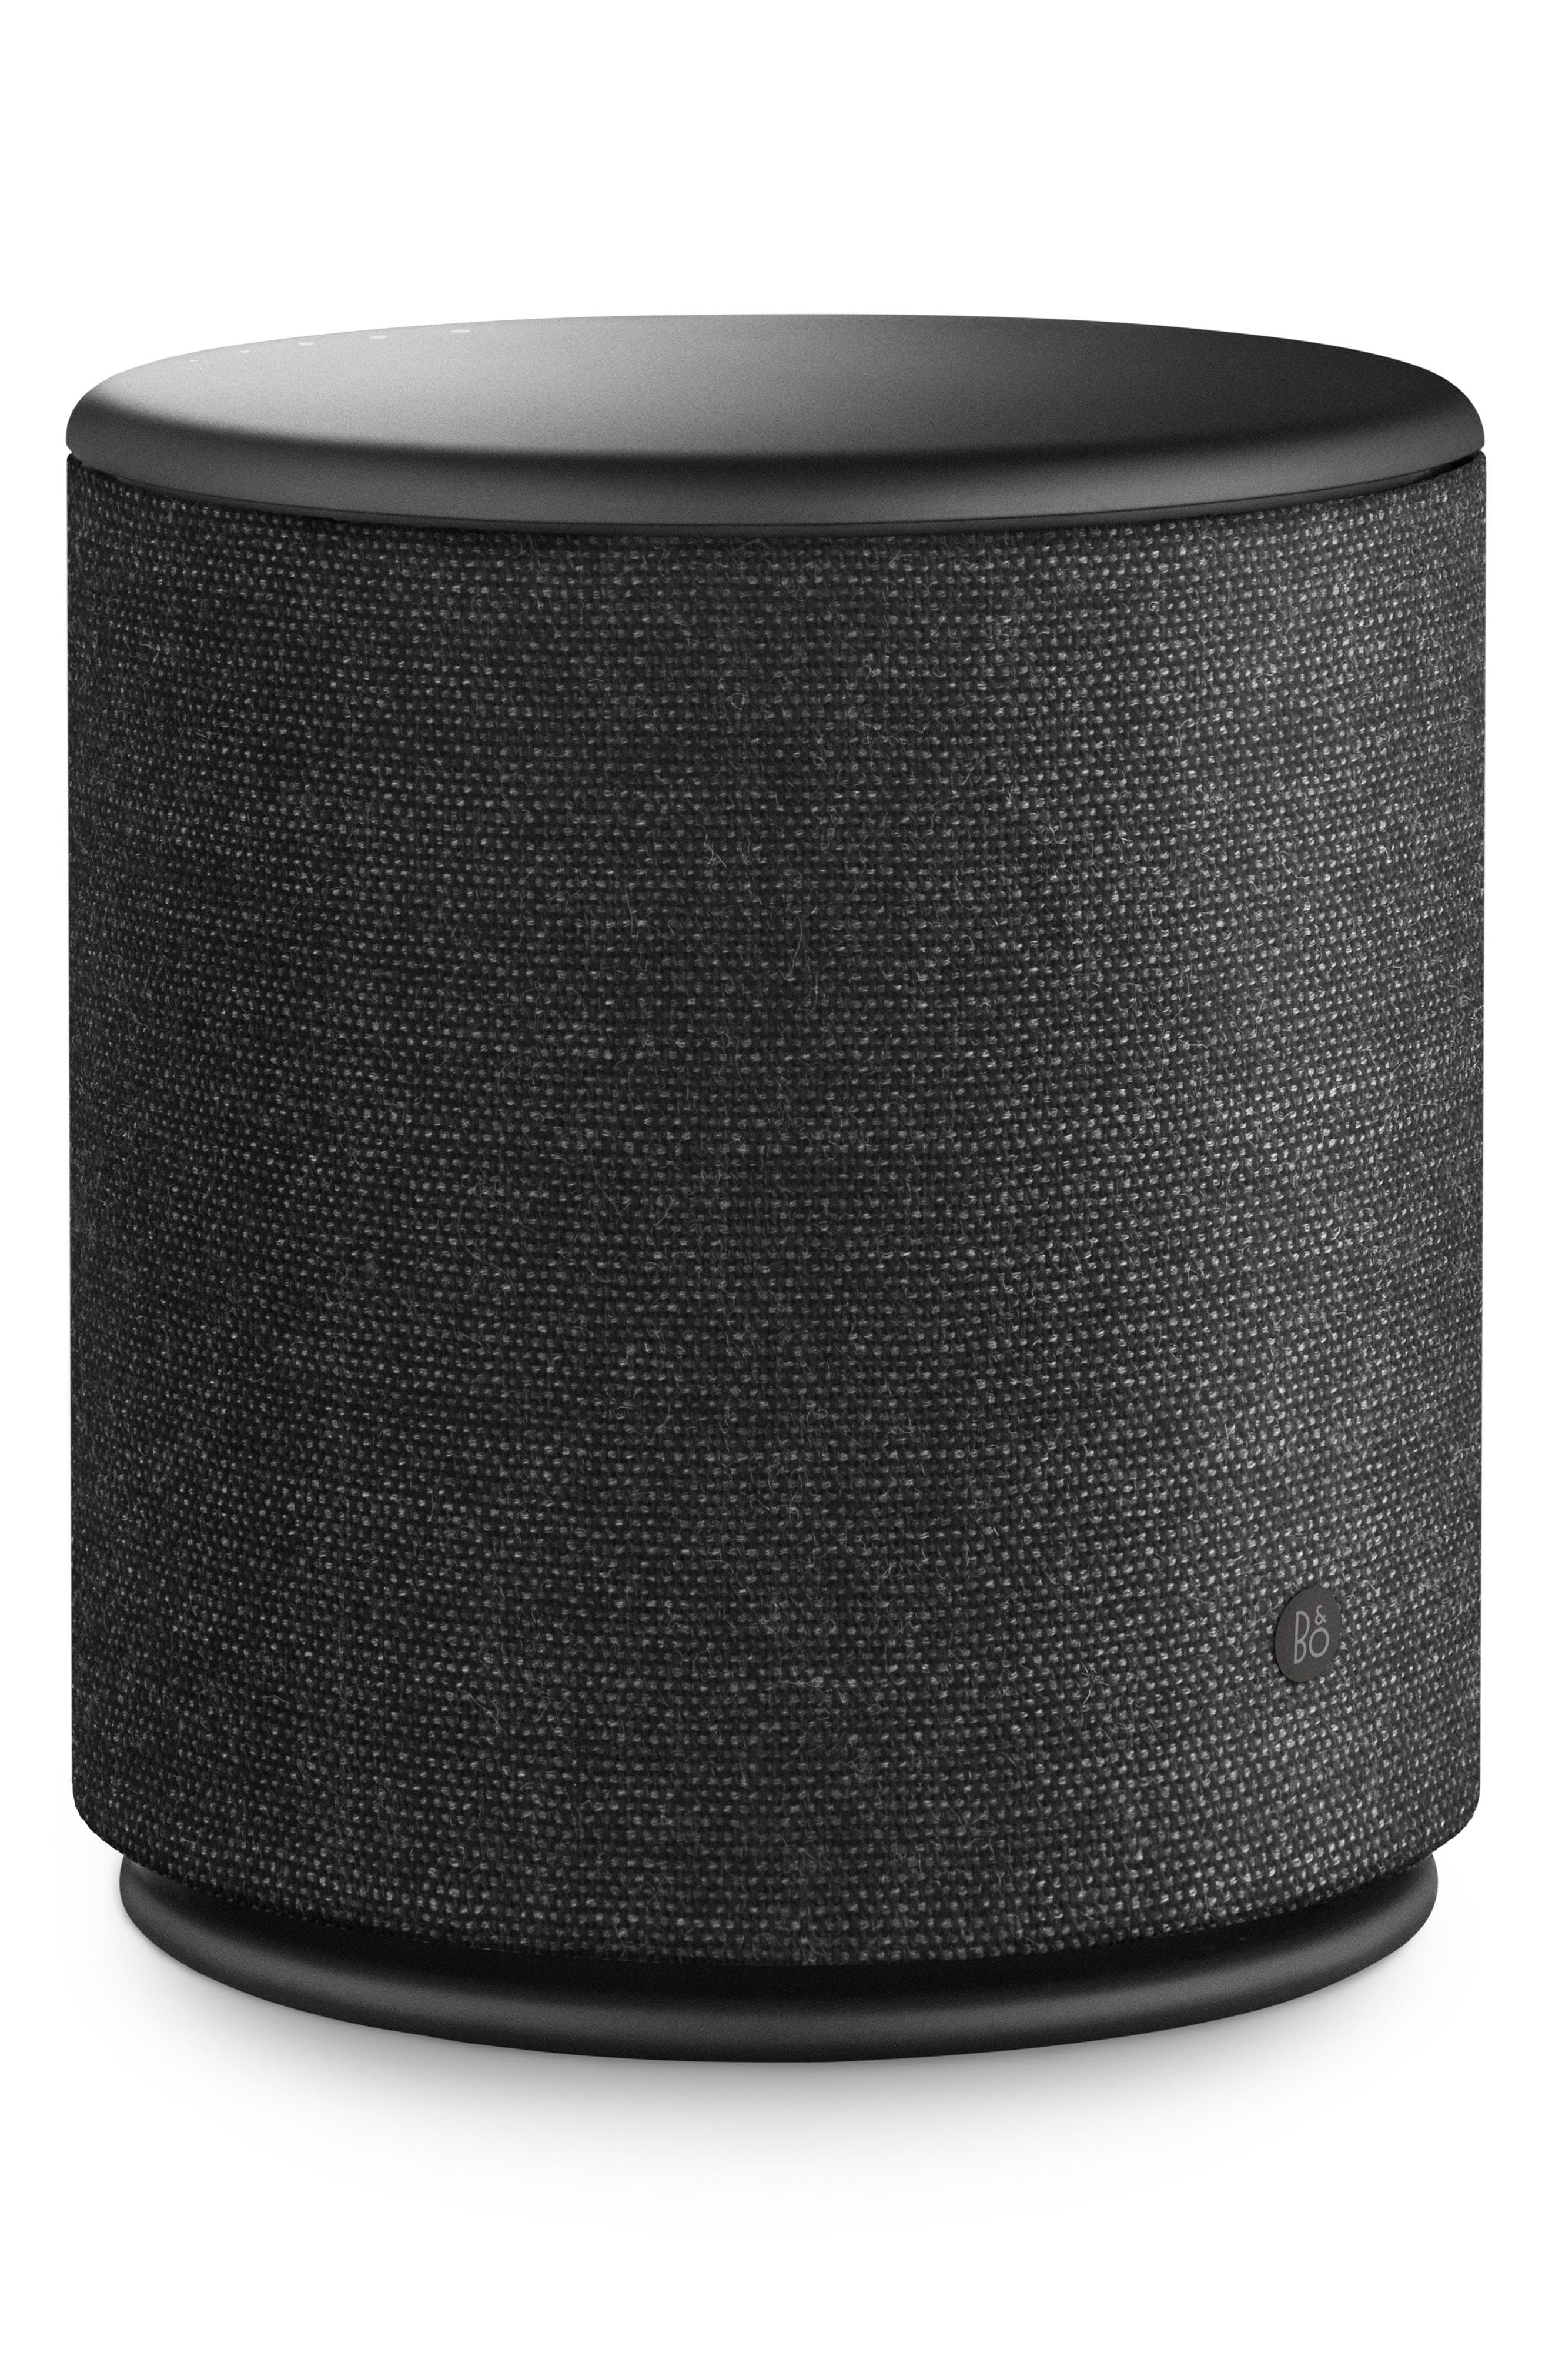 Alternate Image 1 Selected - B&O PLAY M5 Connected Wireless Speaker